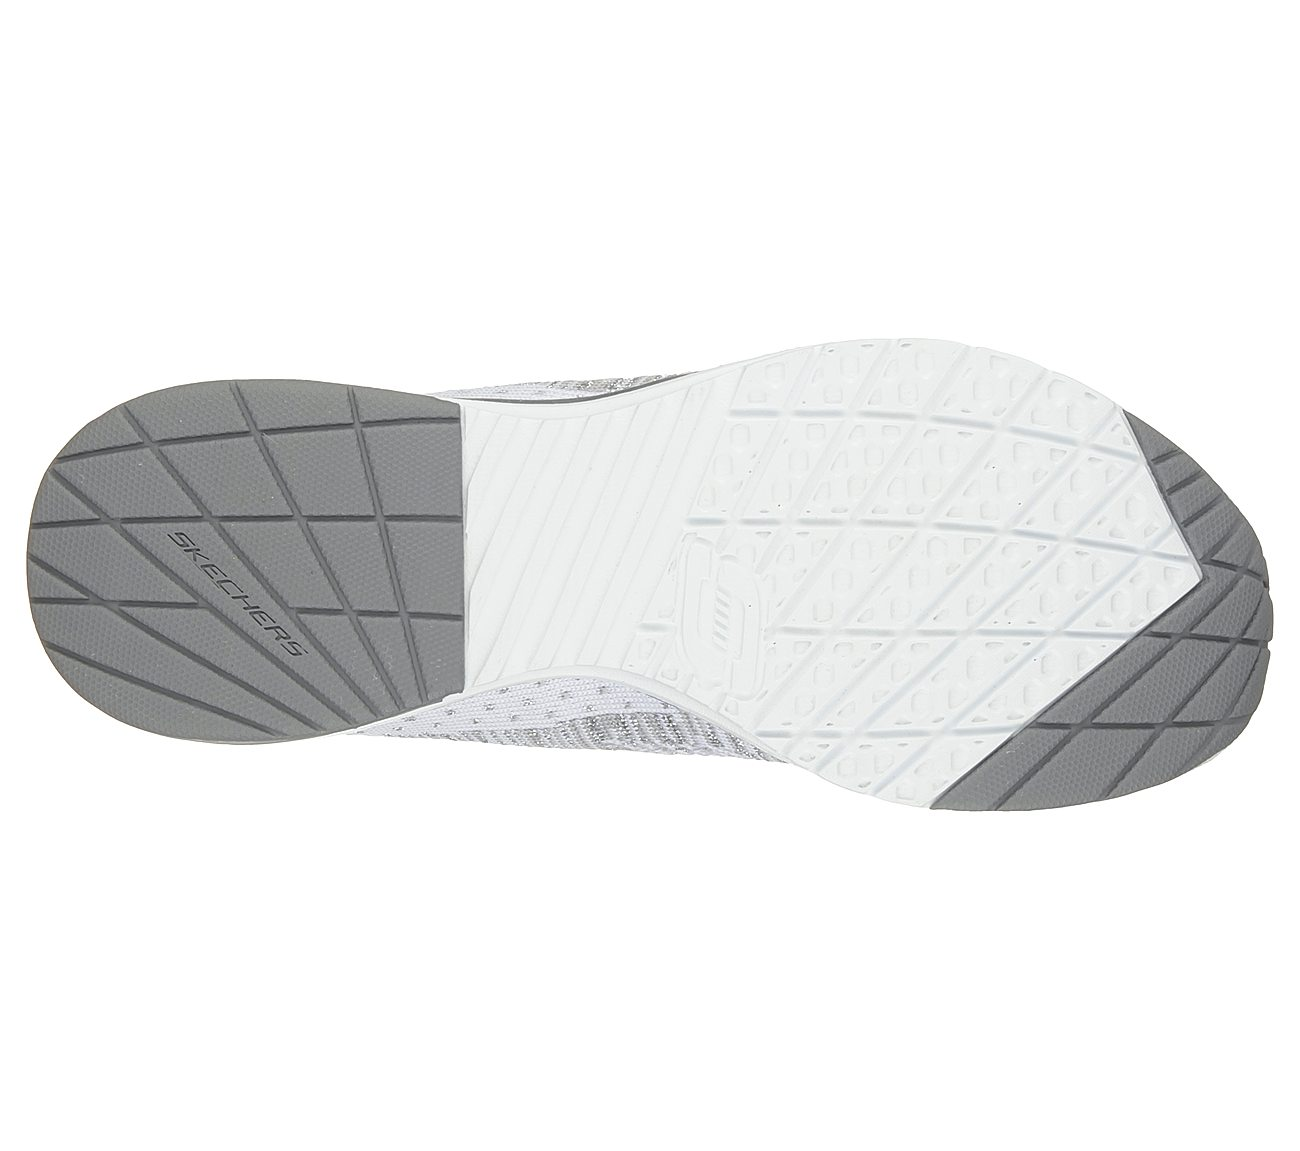 e325658c83a5 Buy SKECHERS Skech-Air Infinity - Stand SKECHERS Sport Shoes only £69.00